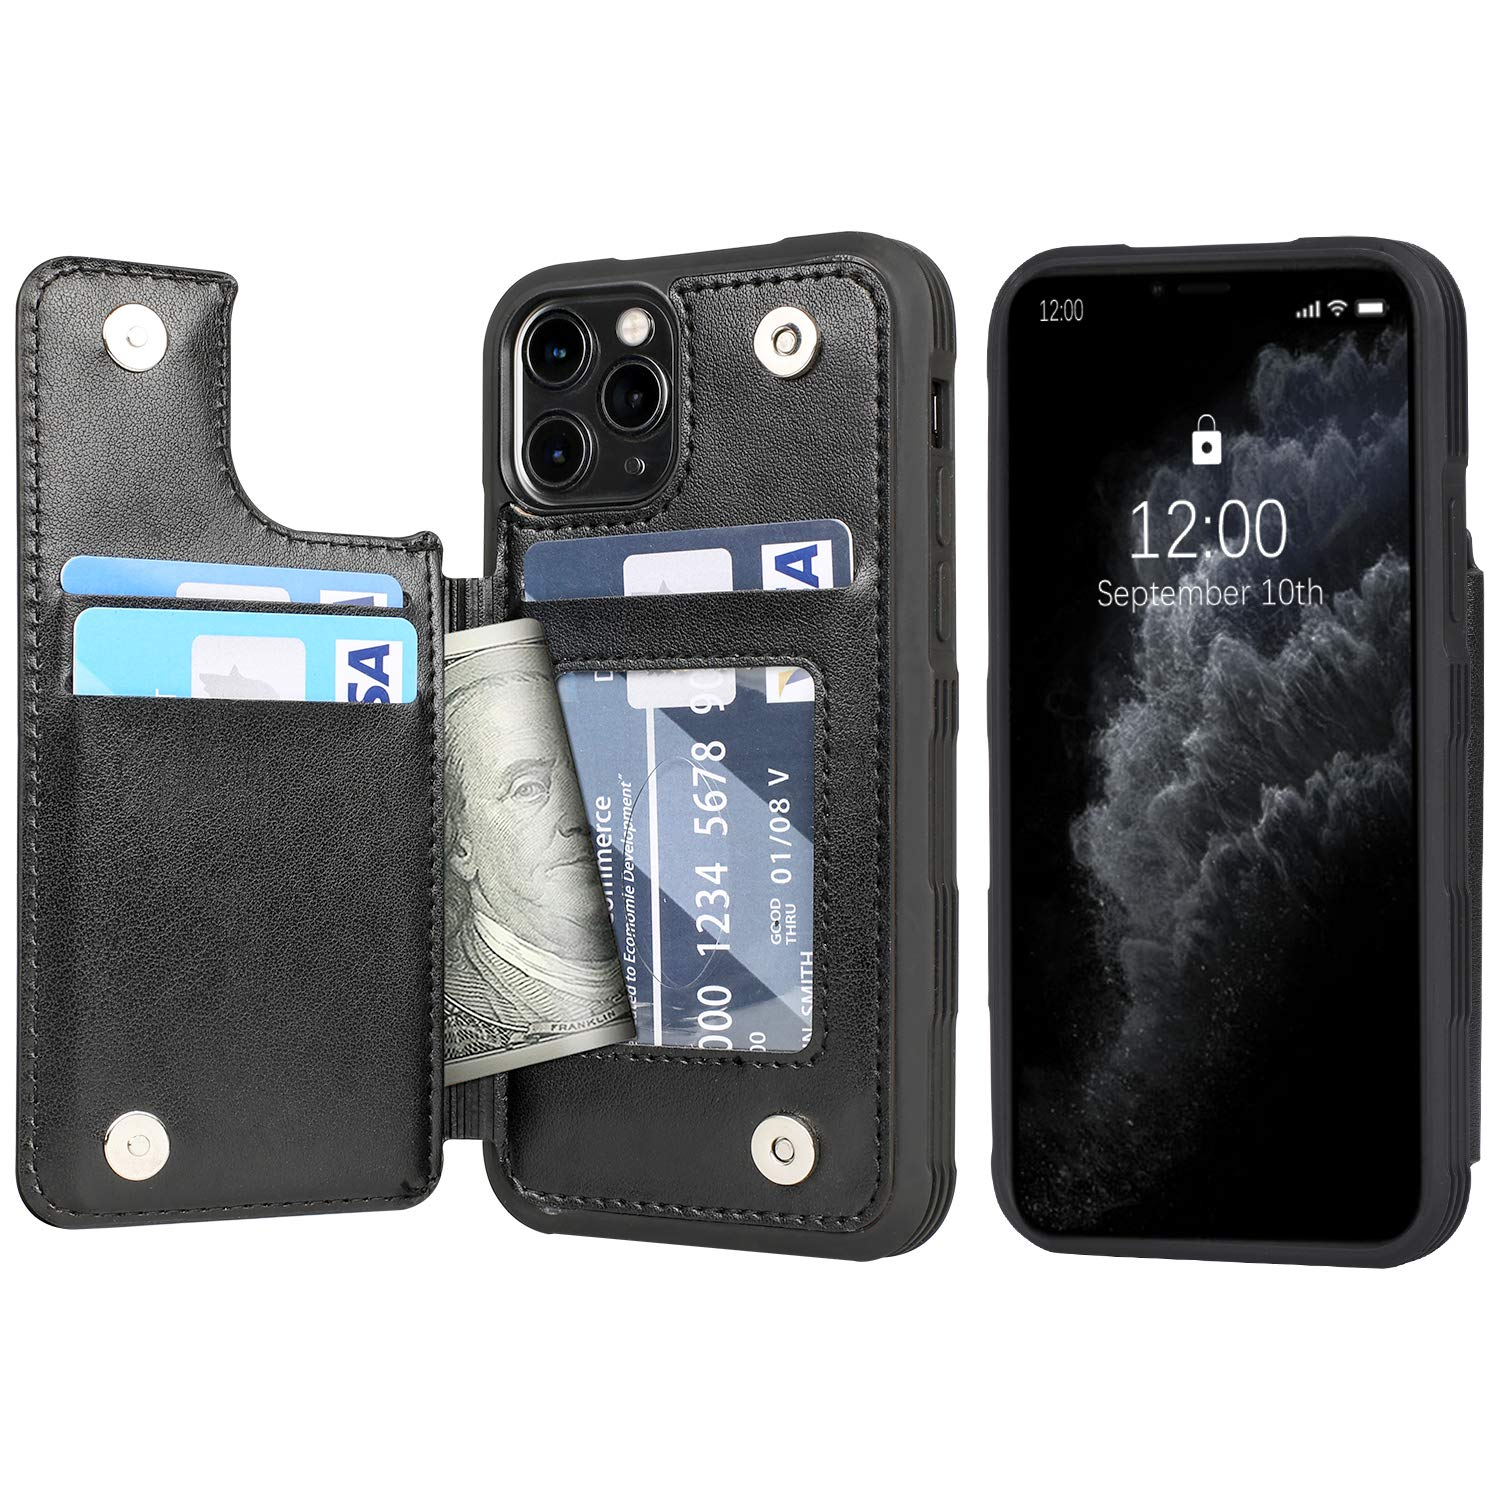 Arae Case for iPhone 11 pro PU Leather Wallet Case with Card Pockets Back Flip Cover for iPhone 11 pro 5.8 inch 2019 (Black)